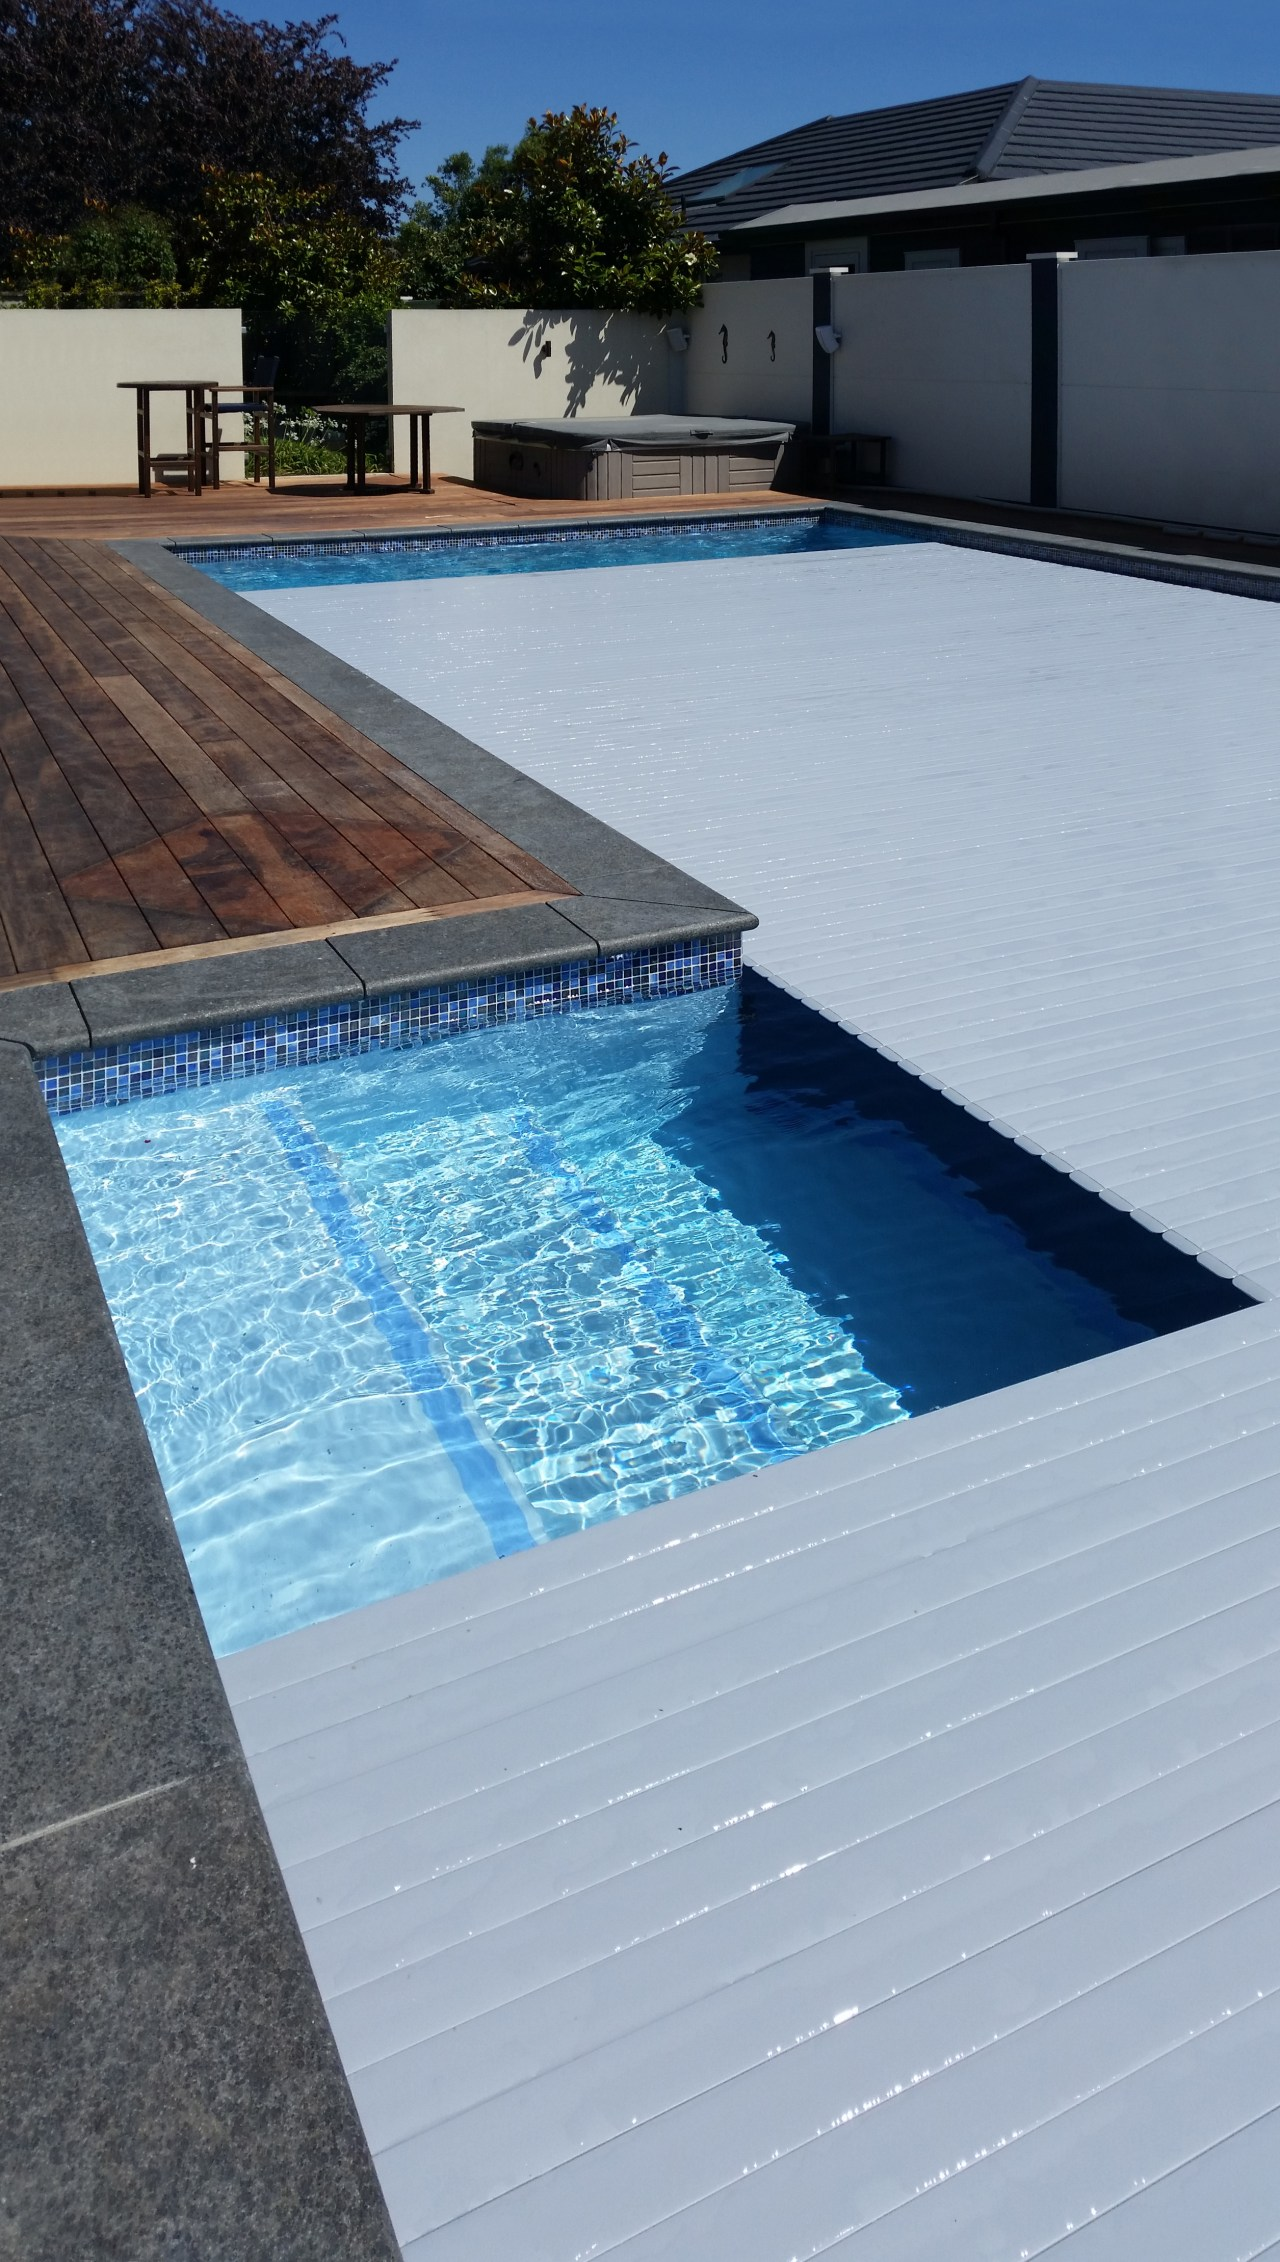 ​​​​​​​Roll Out Roll Under slatted covers are a architecture, composite material, floor, leisure, property, real estate, rectangle, swimming pool, tile, water, water feature, gray